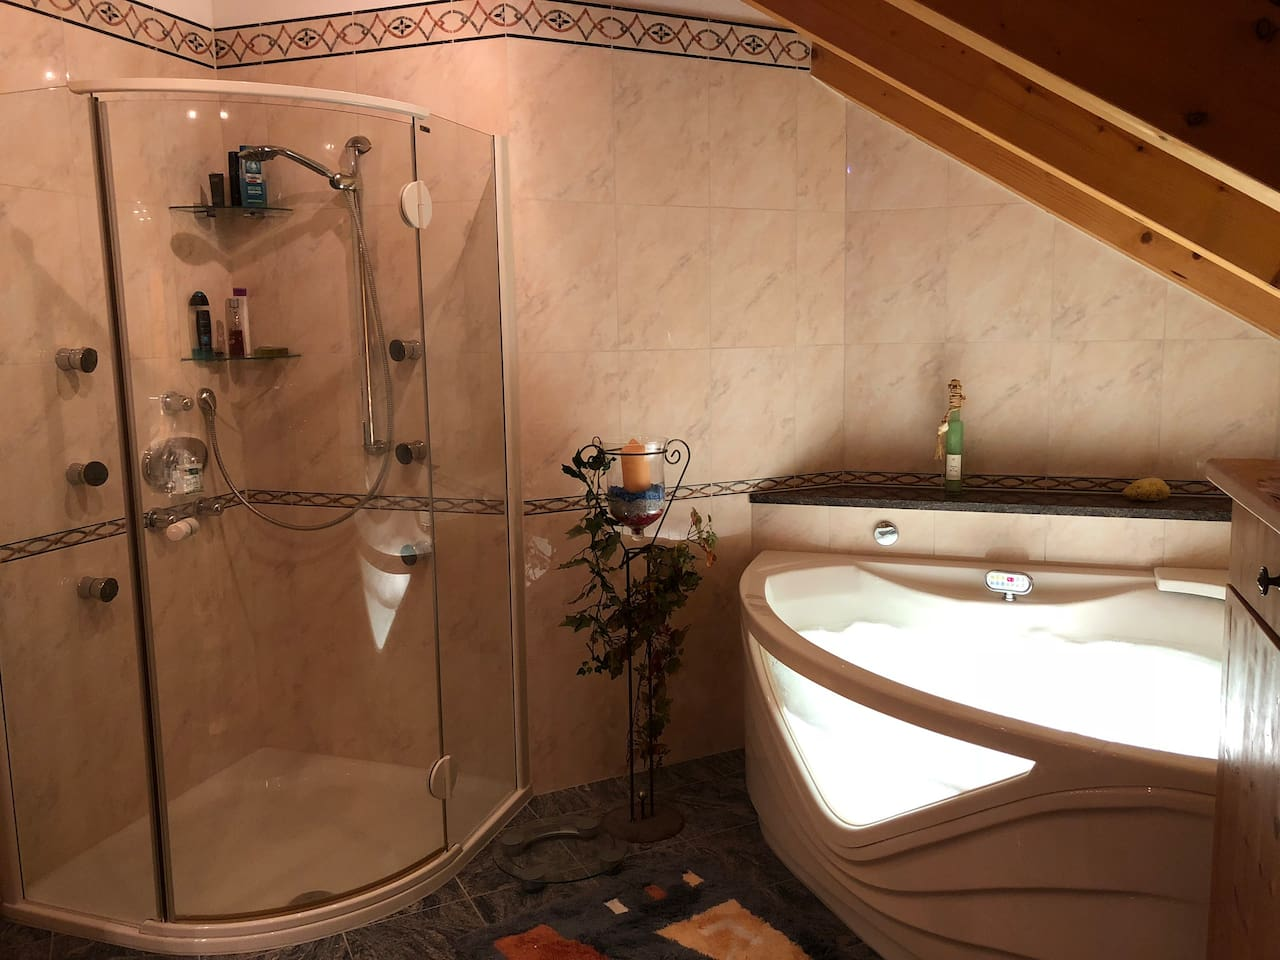 Private bathroom with jacuzzi